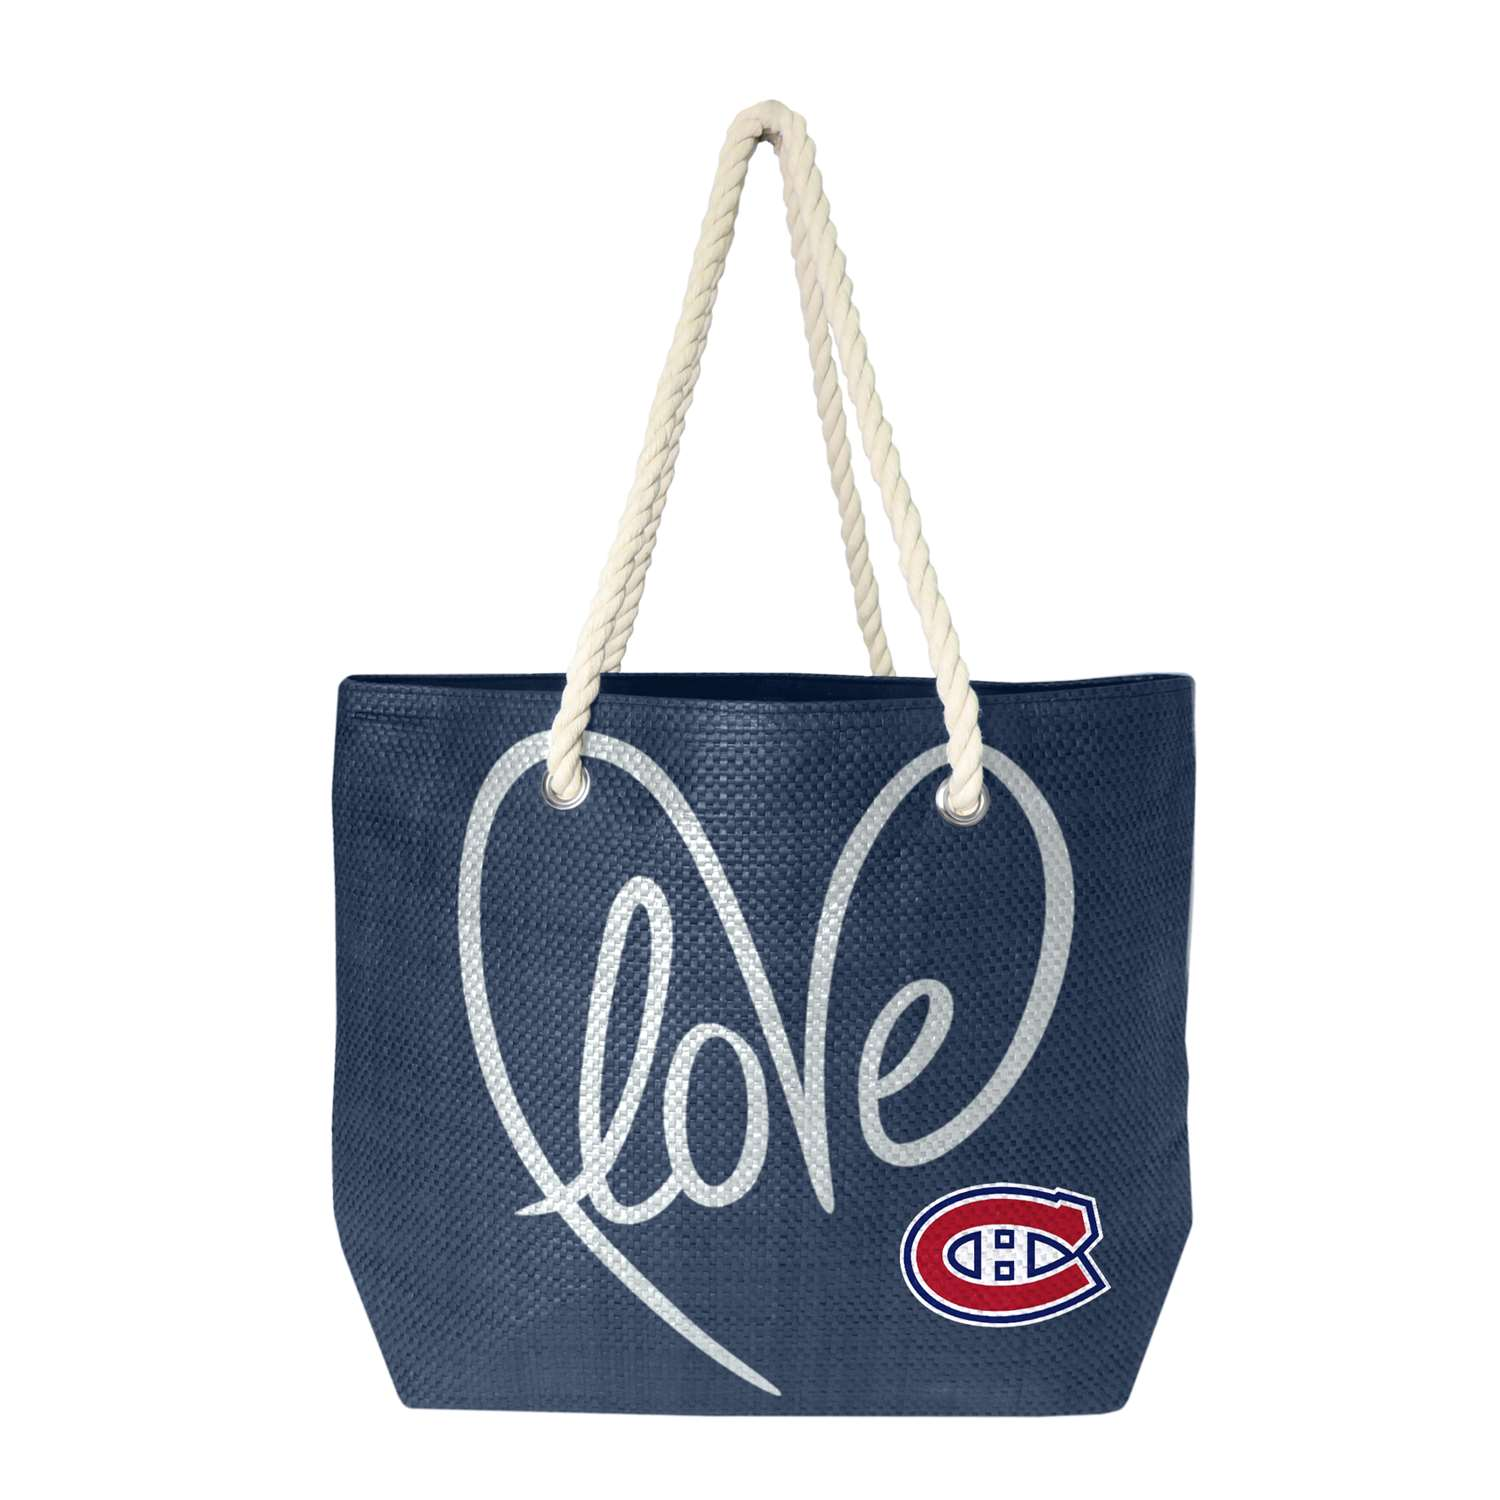 Nhl Hockey Montreal Canadiens Purses Wristlets Totes - 500651-cand-navy-slvr - Montreal Canadiens Rope Tote 500651-CAND-NAVY-SLVR